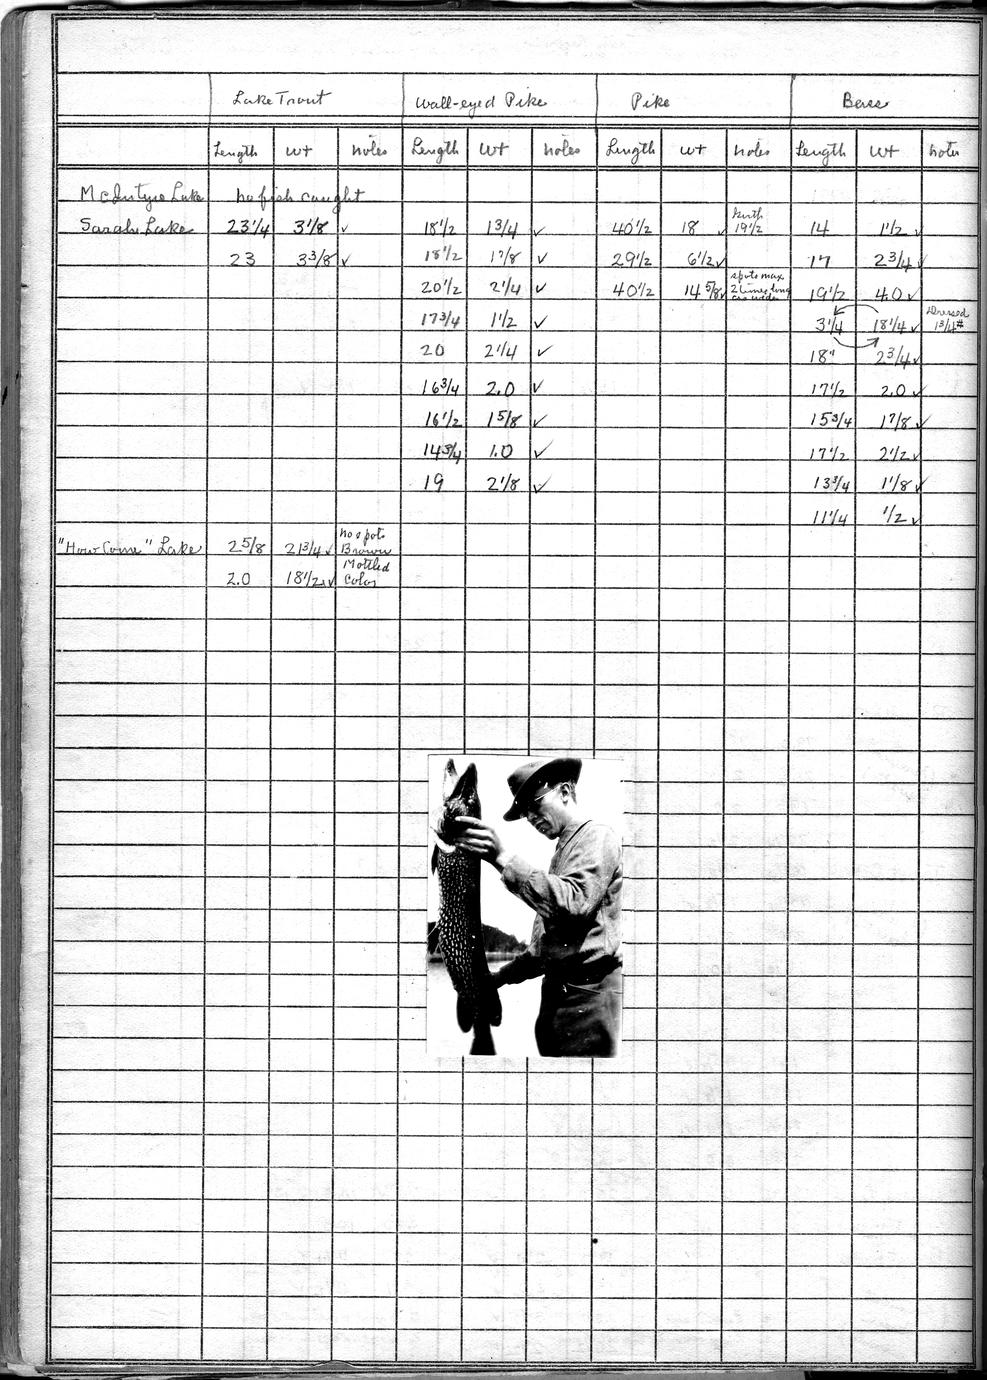 Catch list with small inset photo of AL holding northern pike, International Boundary Waters Canoe Area, June 1924